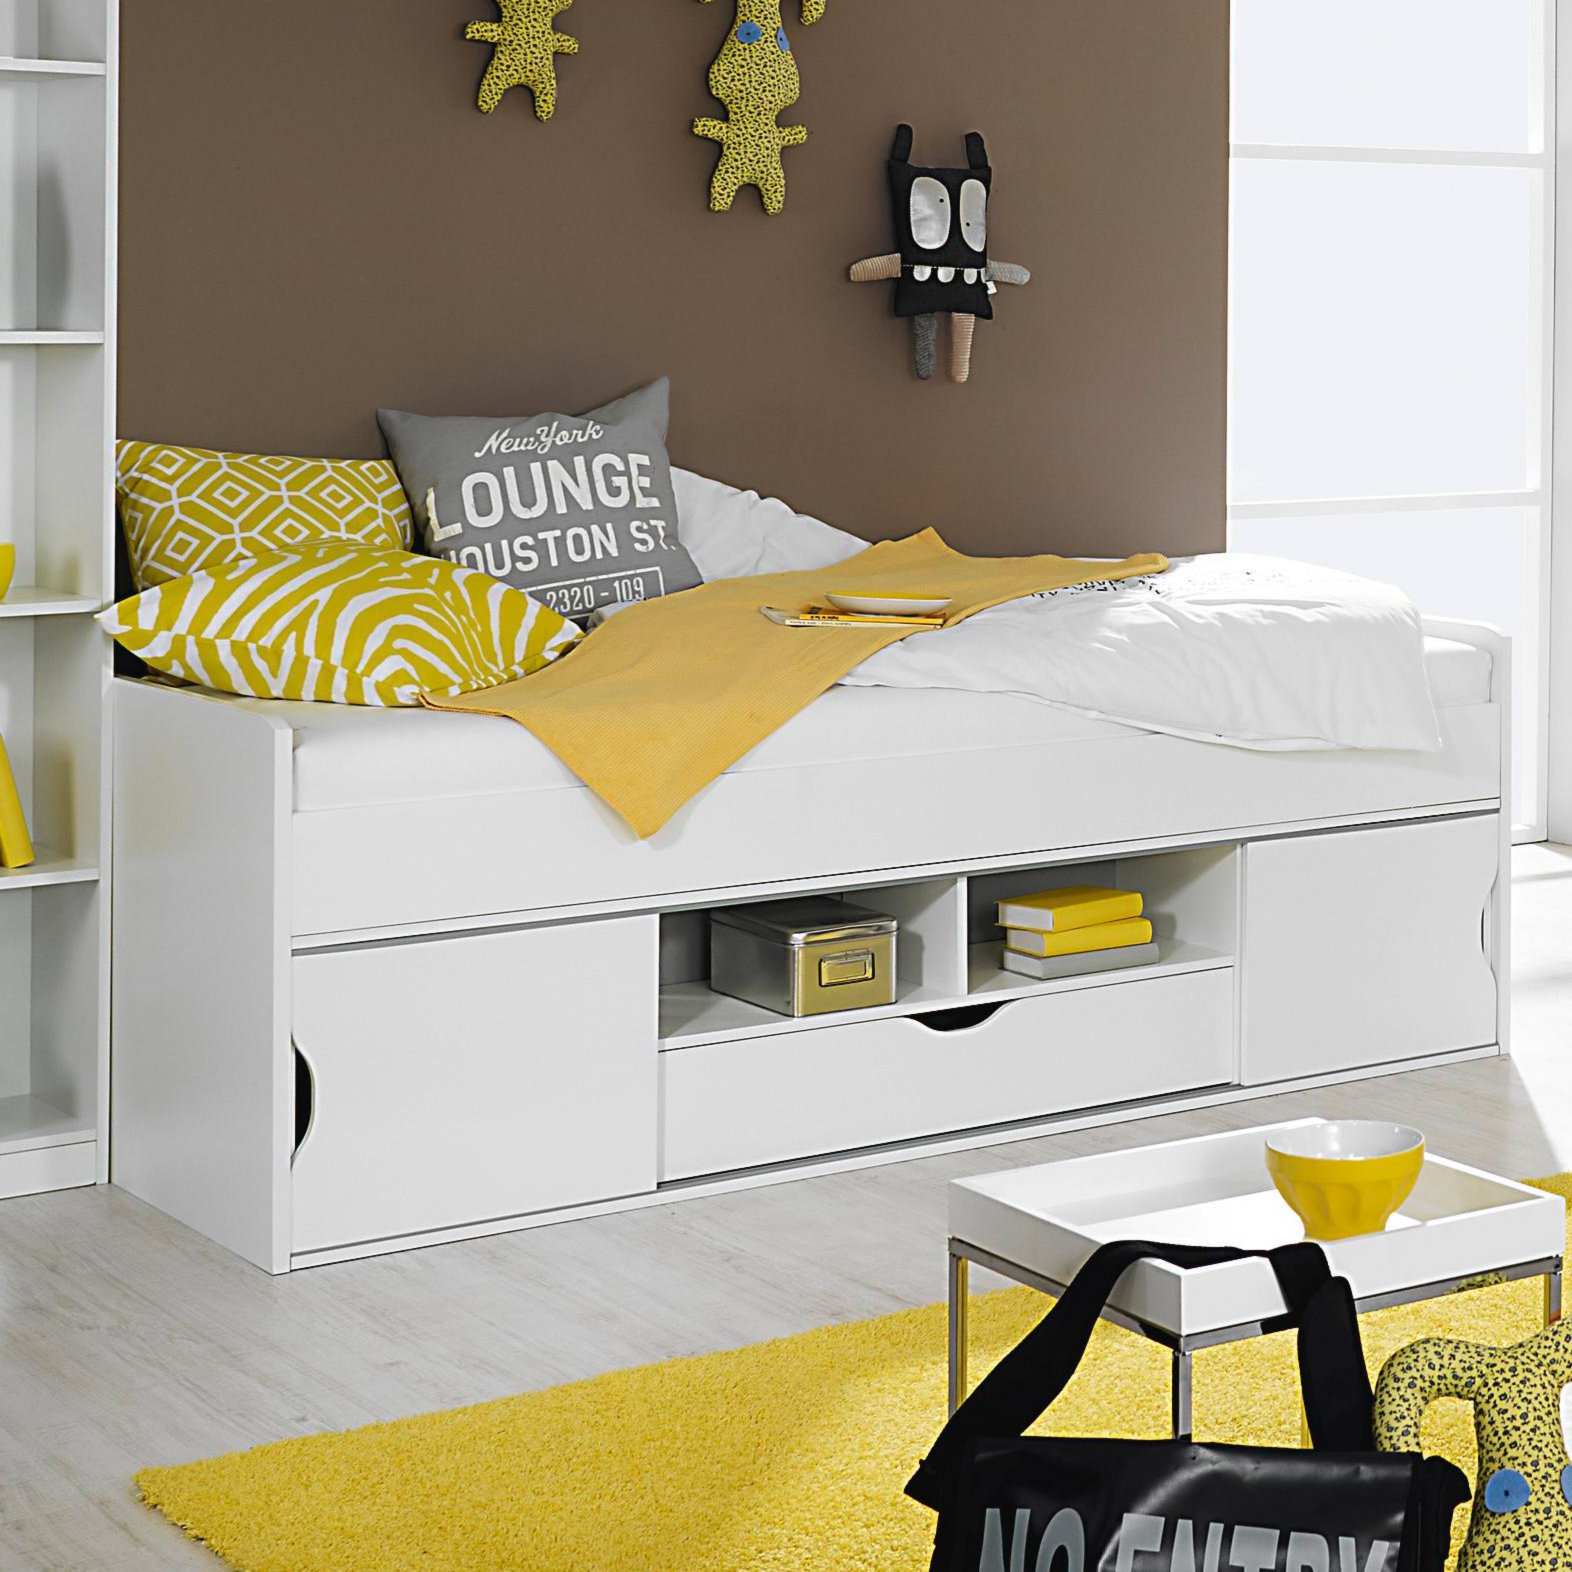 kinderhochbett mit rutsche roller. Black Bedroom Furniture Sets. Home Design Ideas